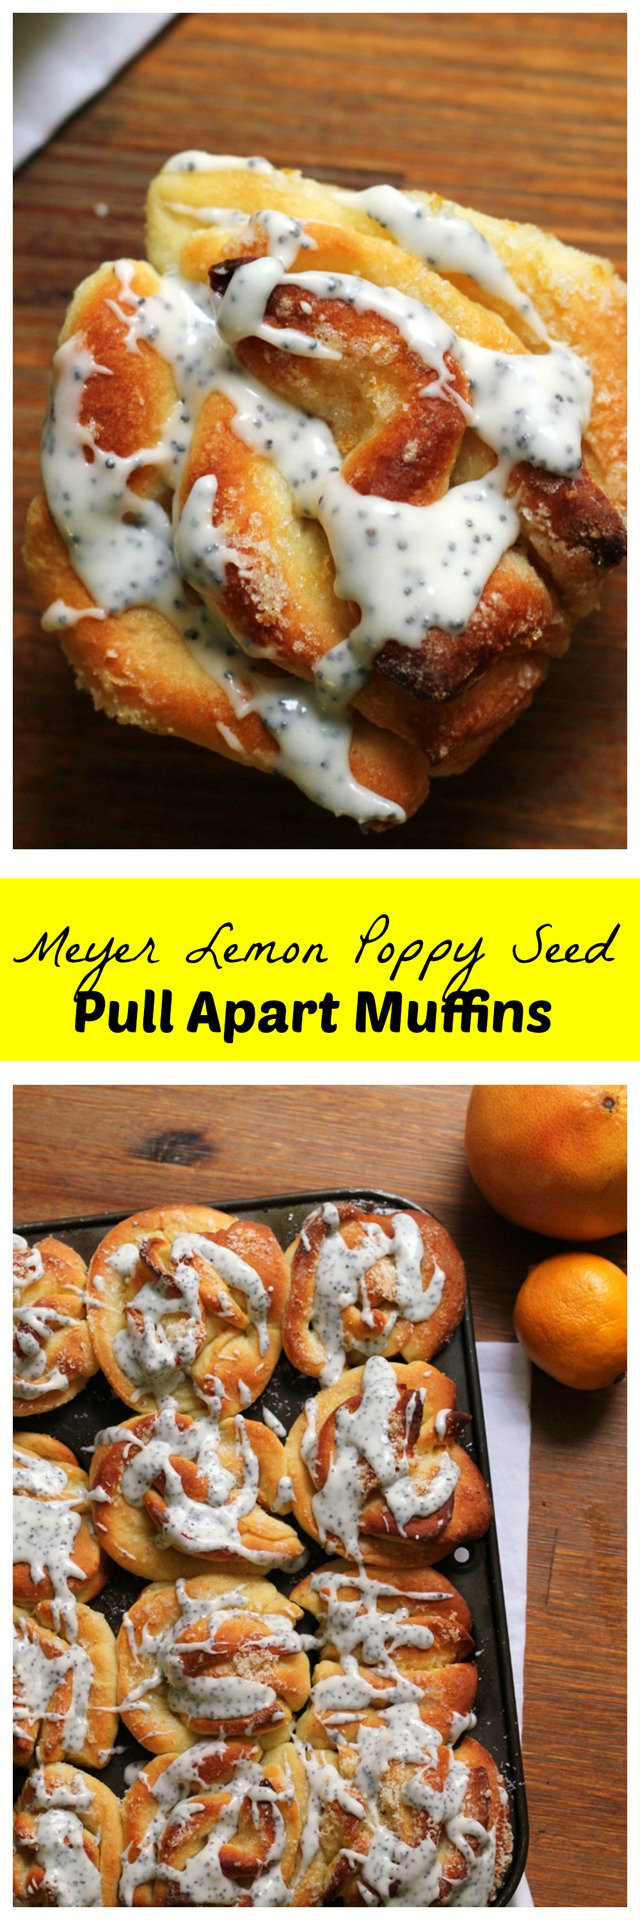 Start your morning with a breath of fresh air in the form of a meyer lemon poppy seed pull-apart muffin!